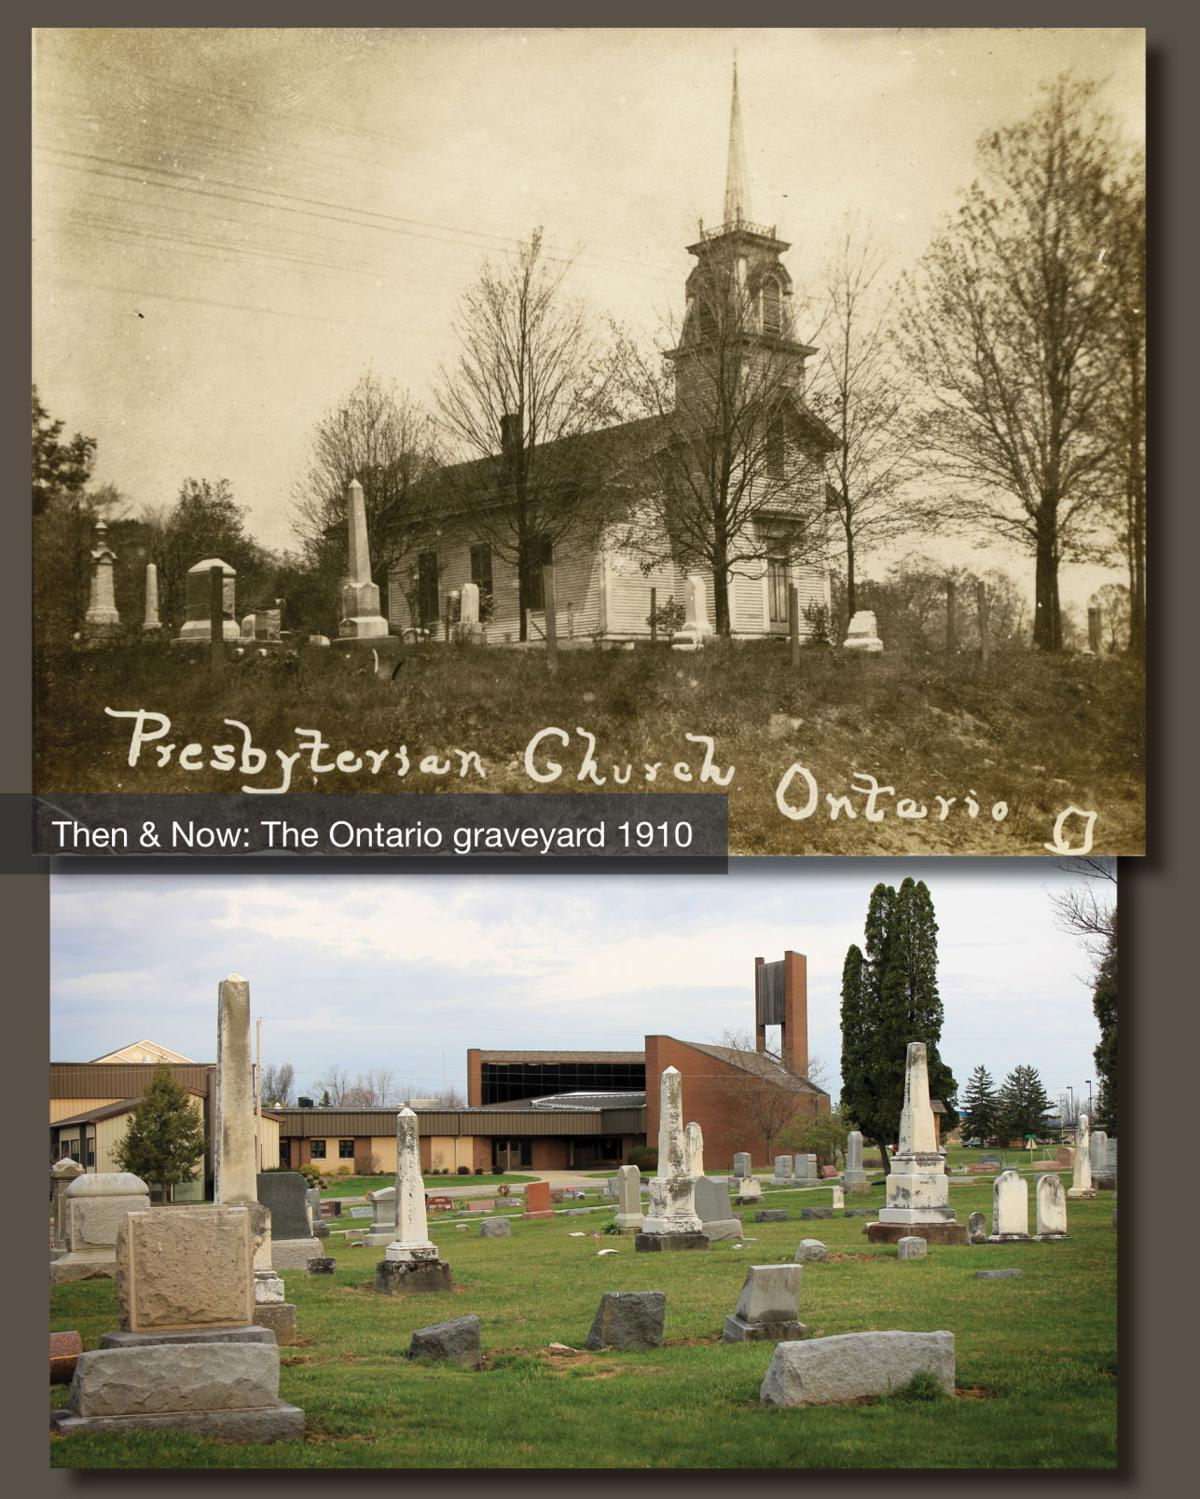 Then & Now: The Ontario Graveyard 1910